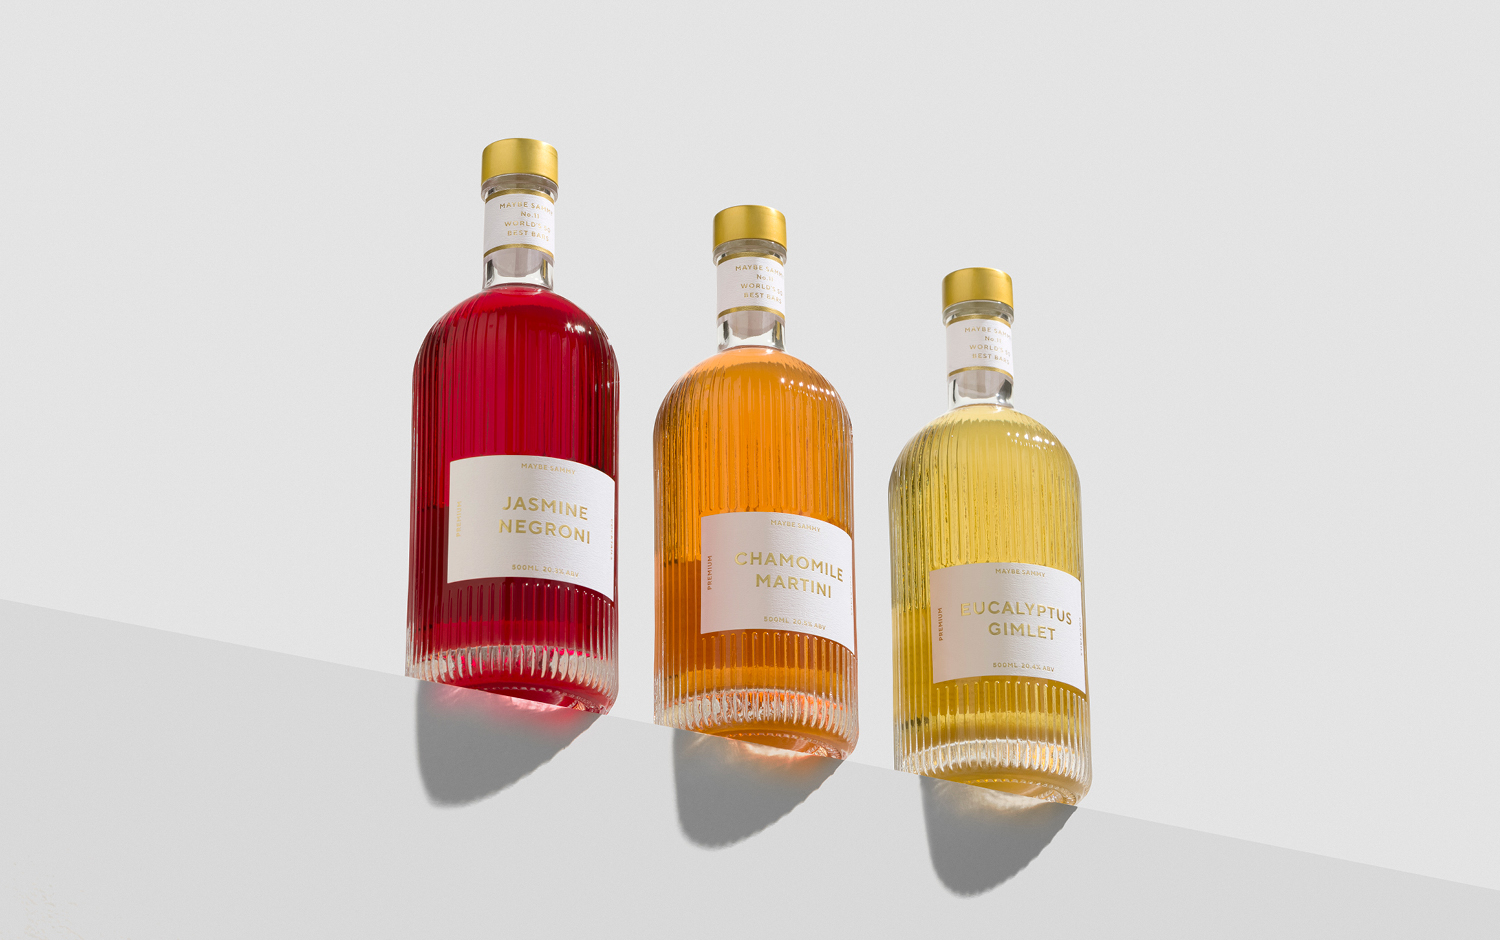 Maybe Sammy Cocktails Identity and Bespoke Bottle Packaging Designed by The Bar Brand People